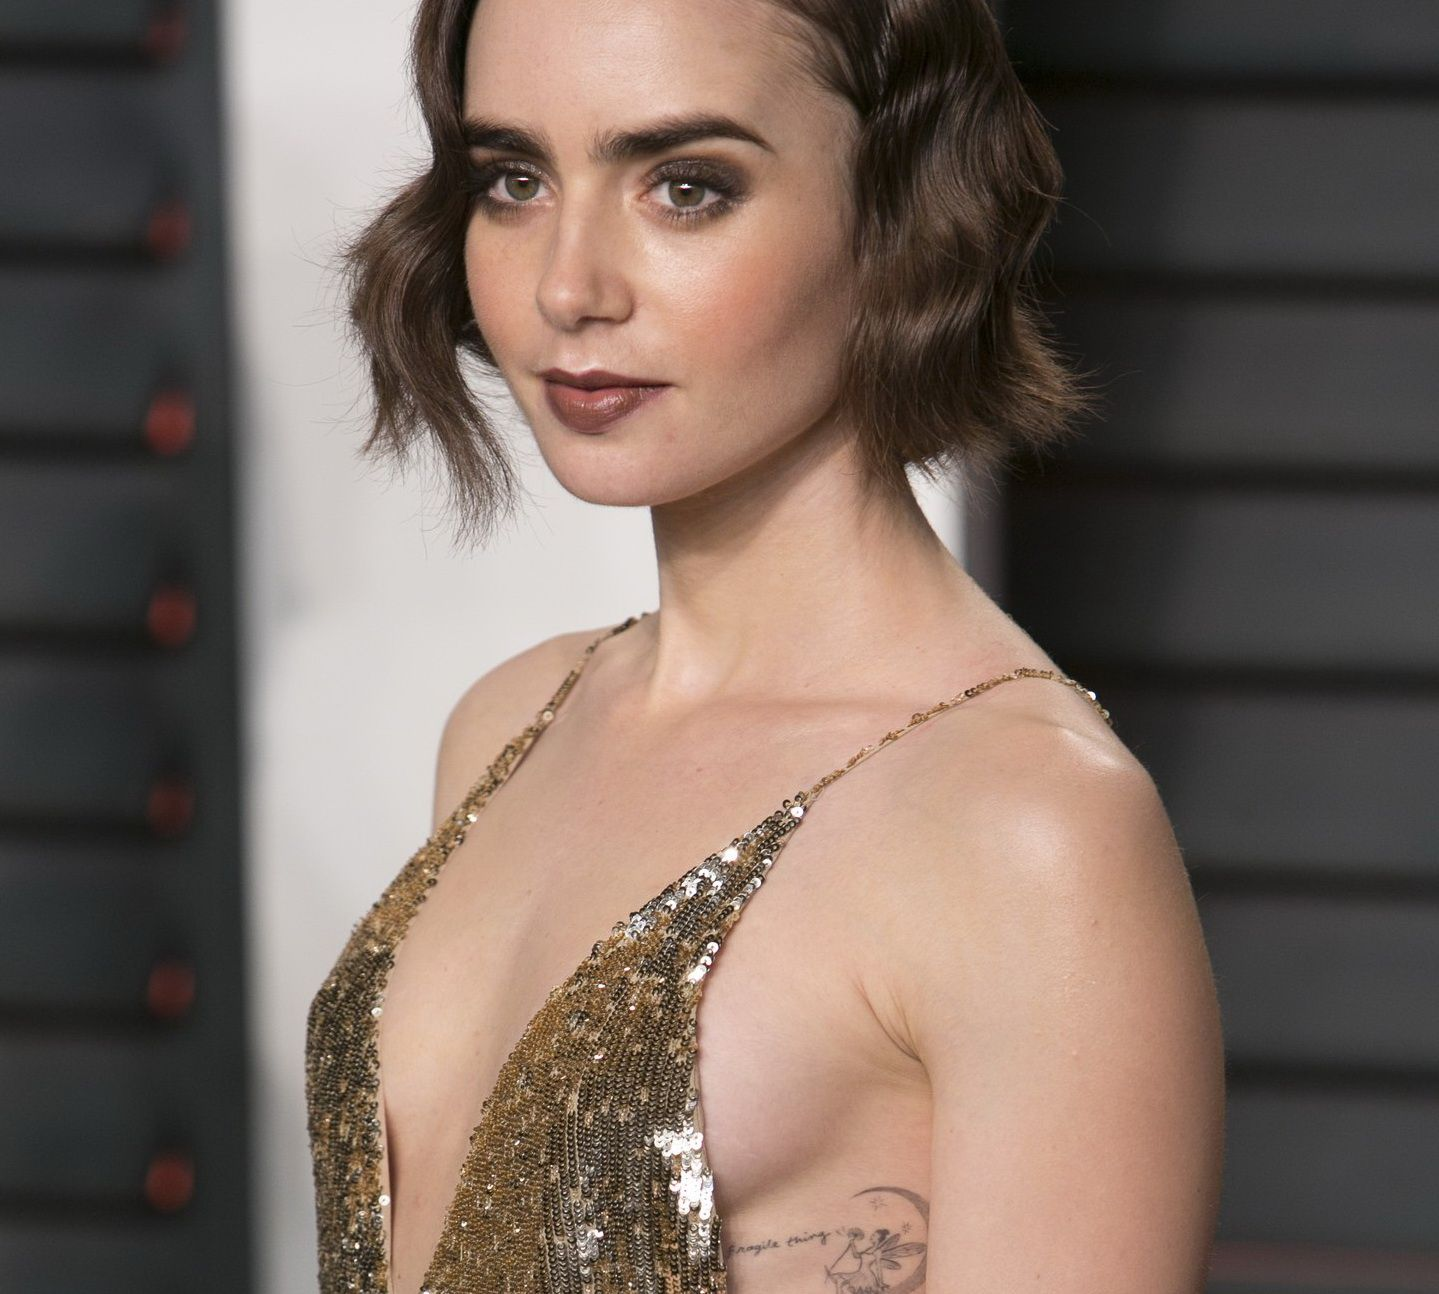 Cleavage Lily Collins naked (58 foto and video), Pussy, Sideboobs, Selfie, lingerie 2006